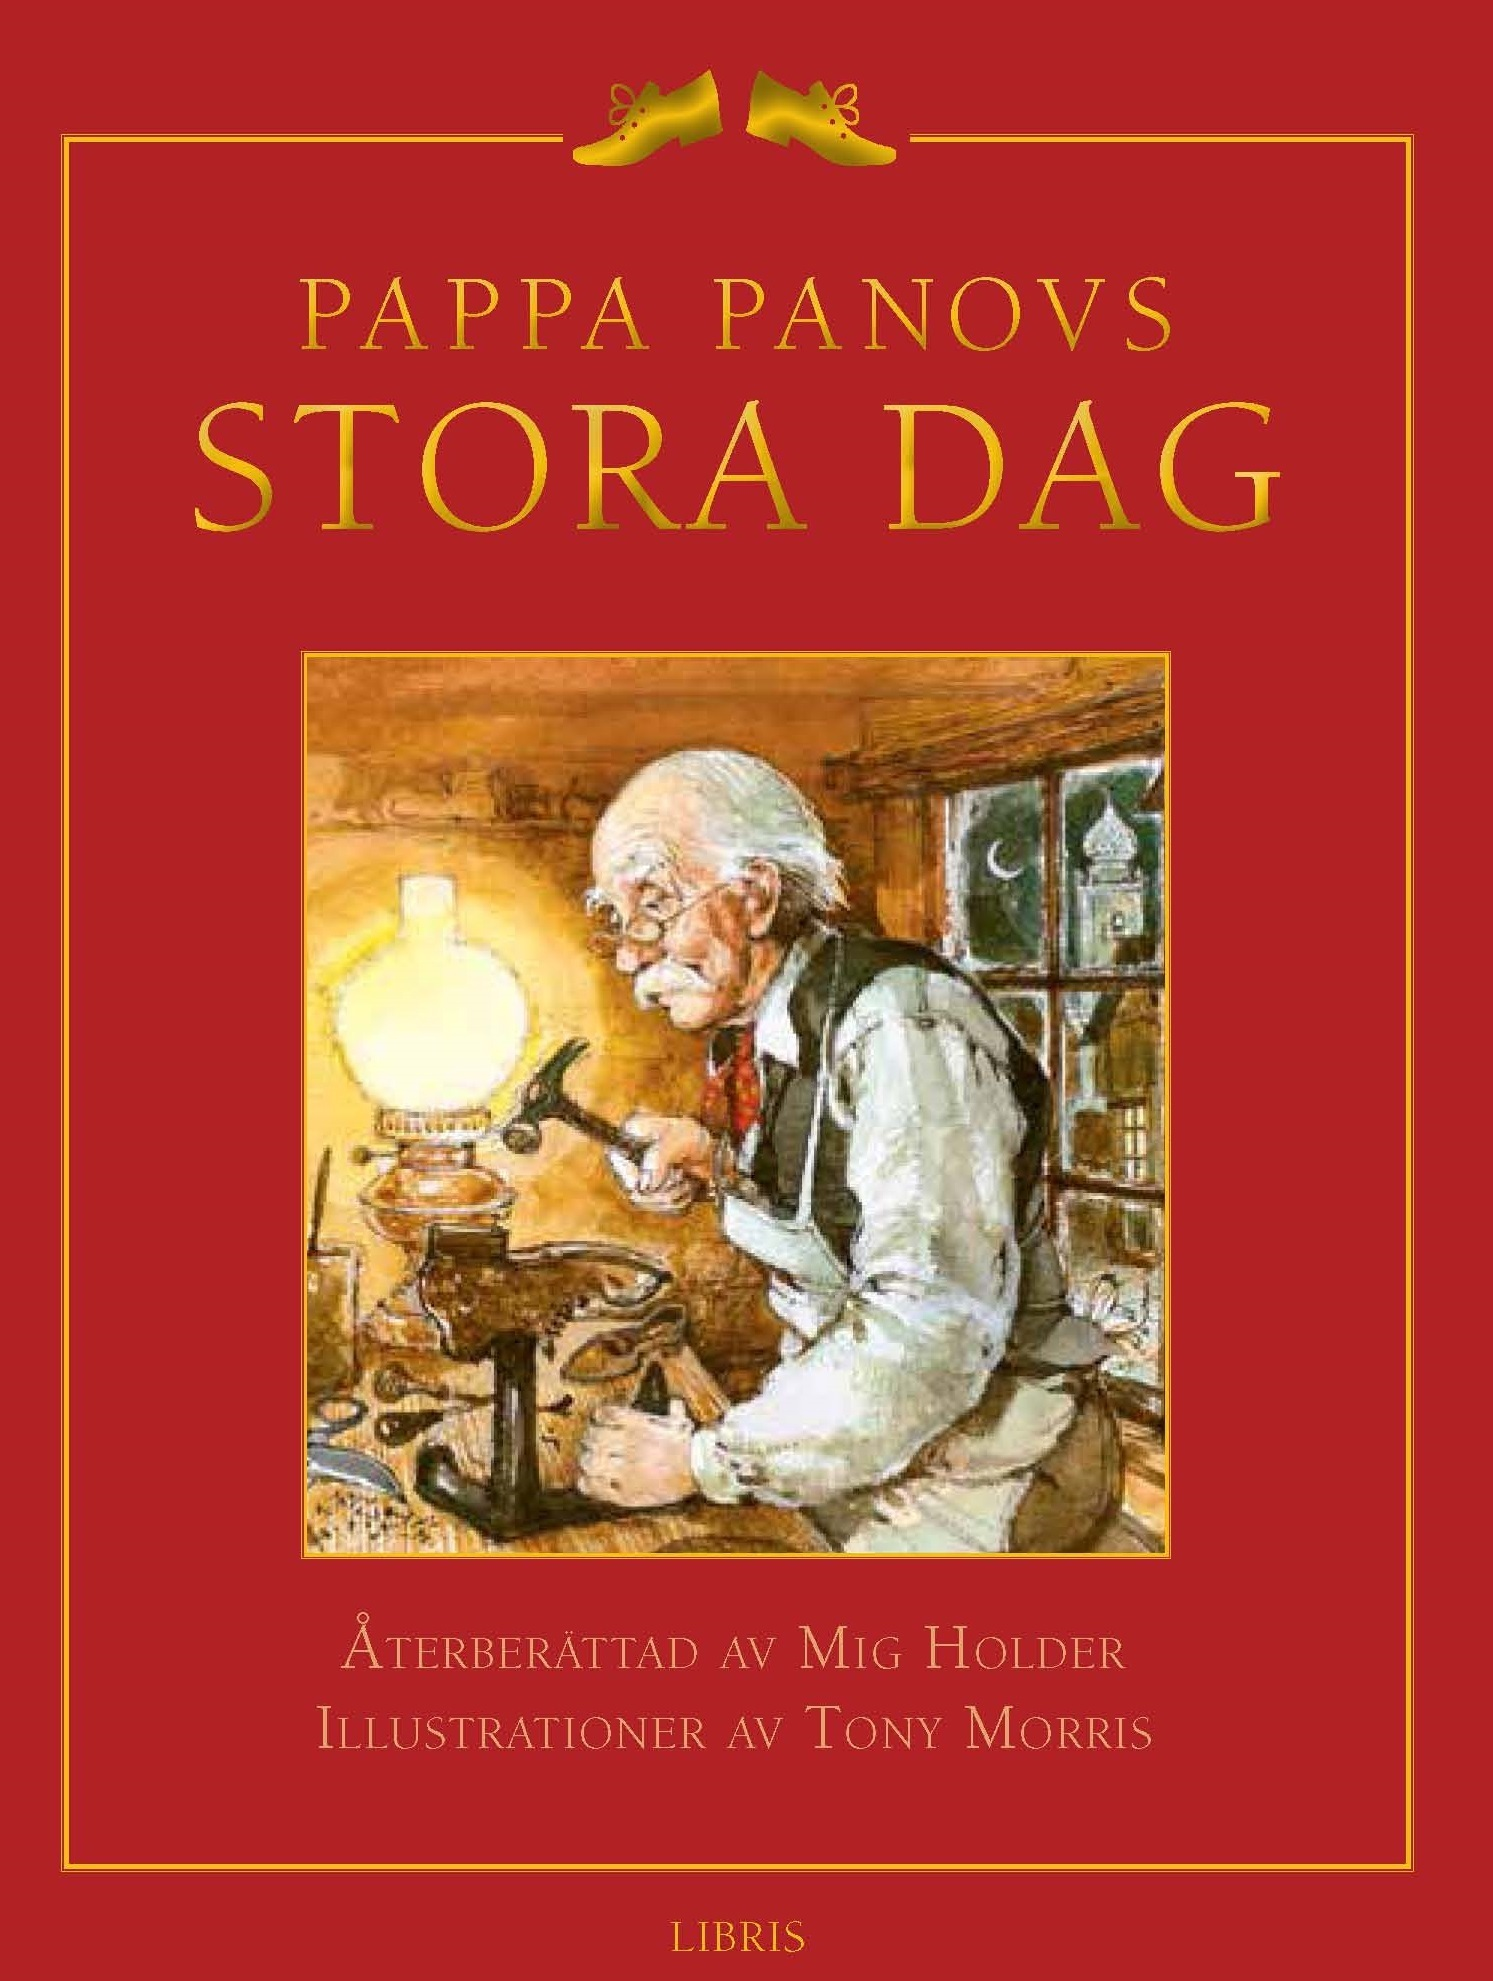 Image for Pappa Panovs stora dag from Suomalainen.com